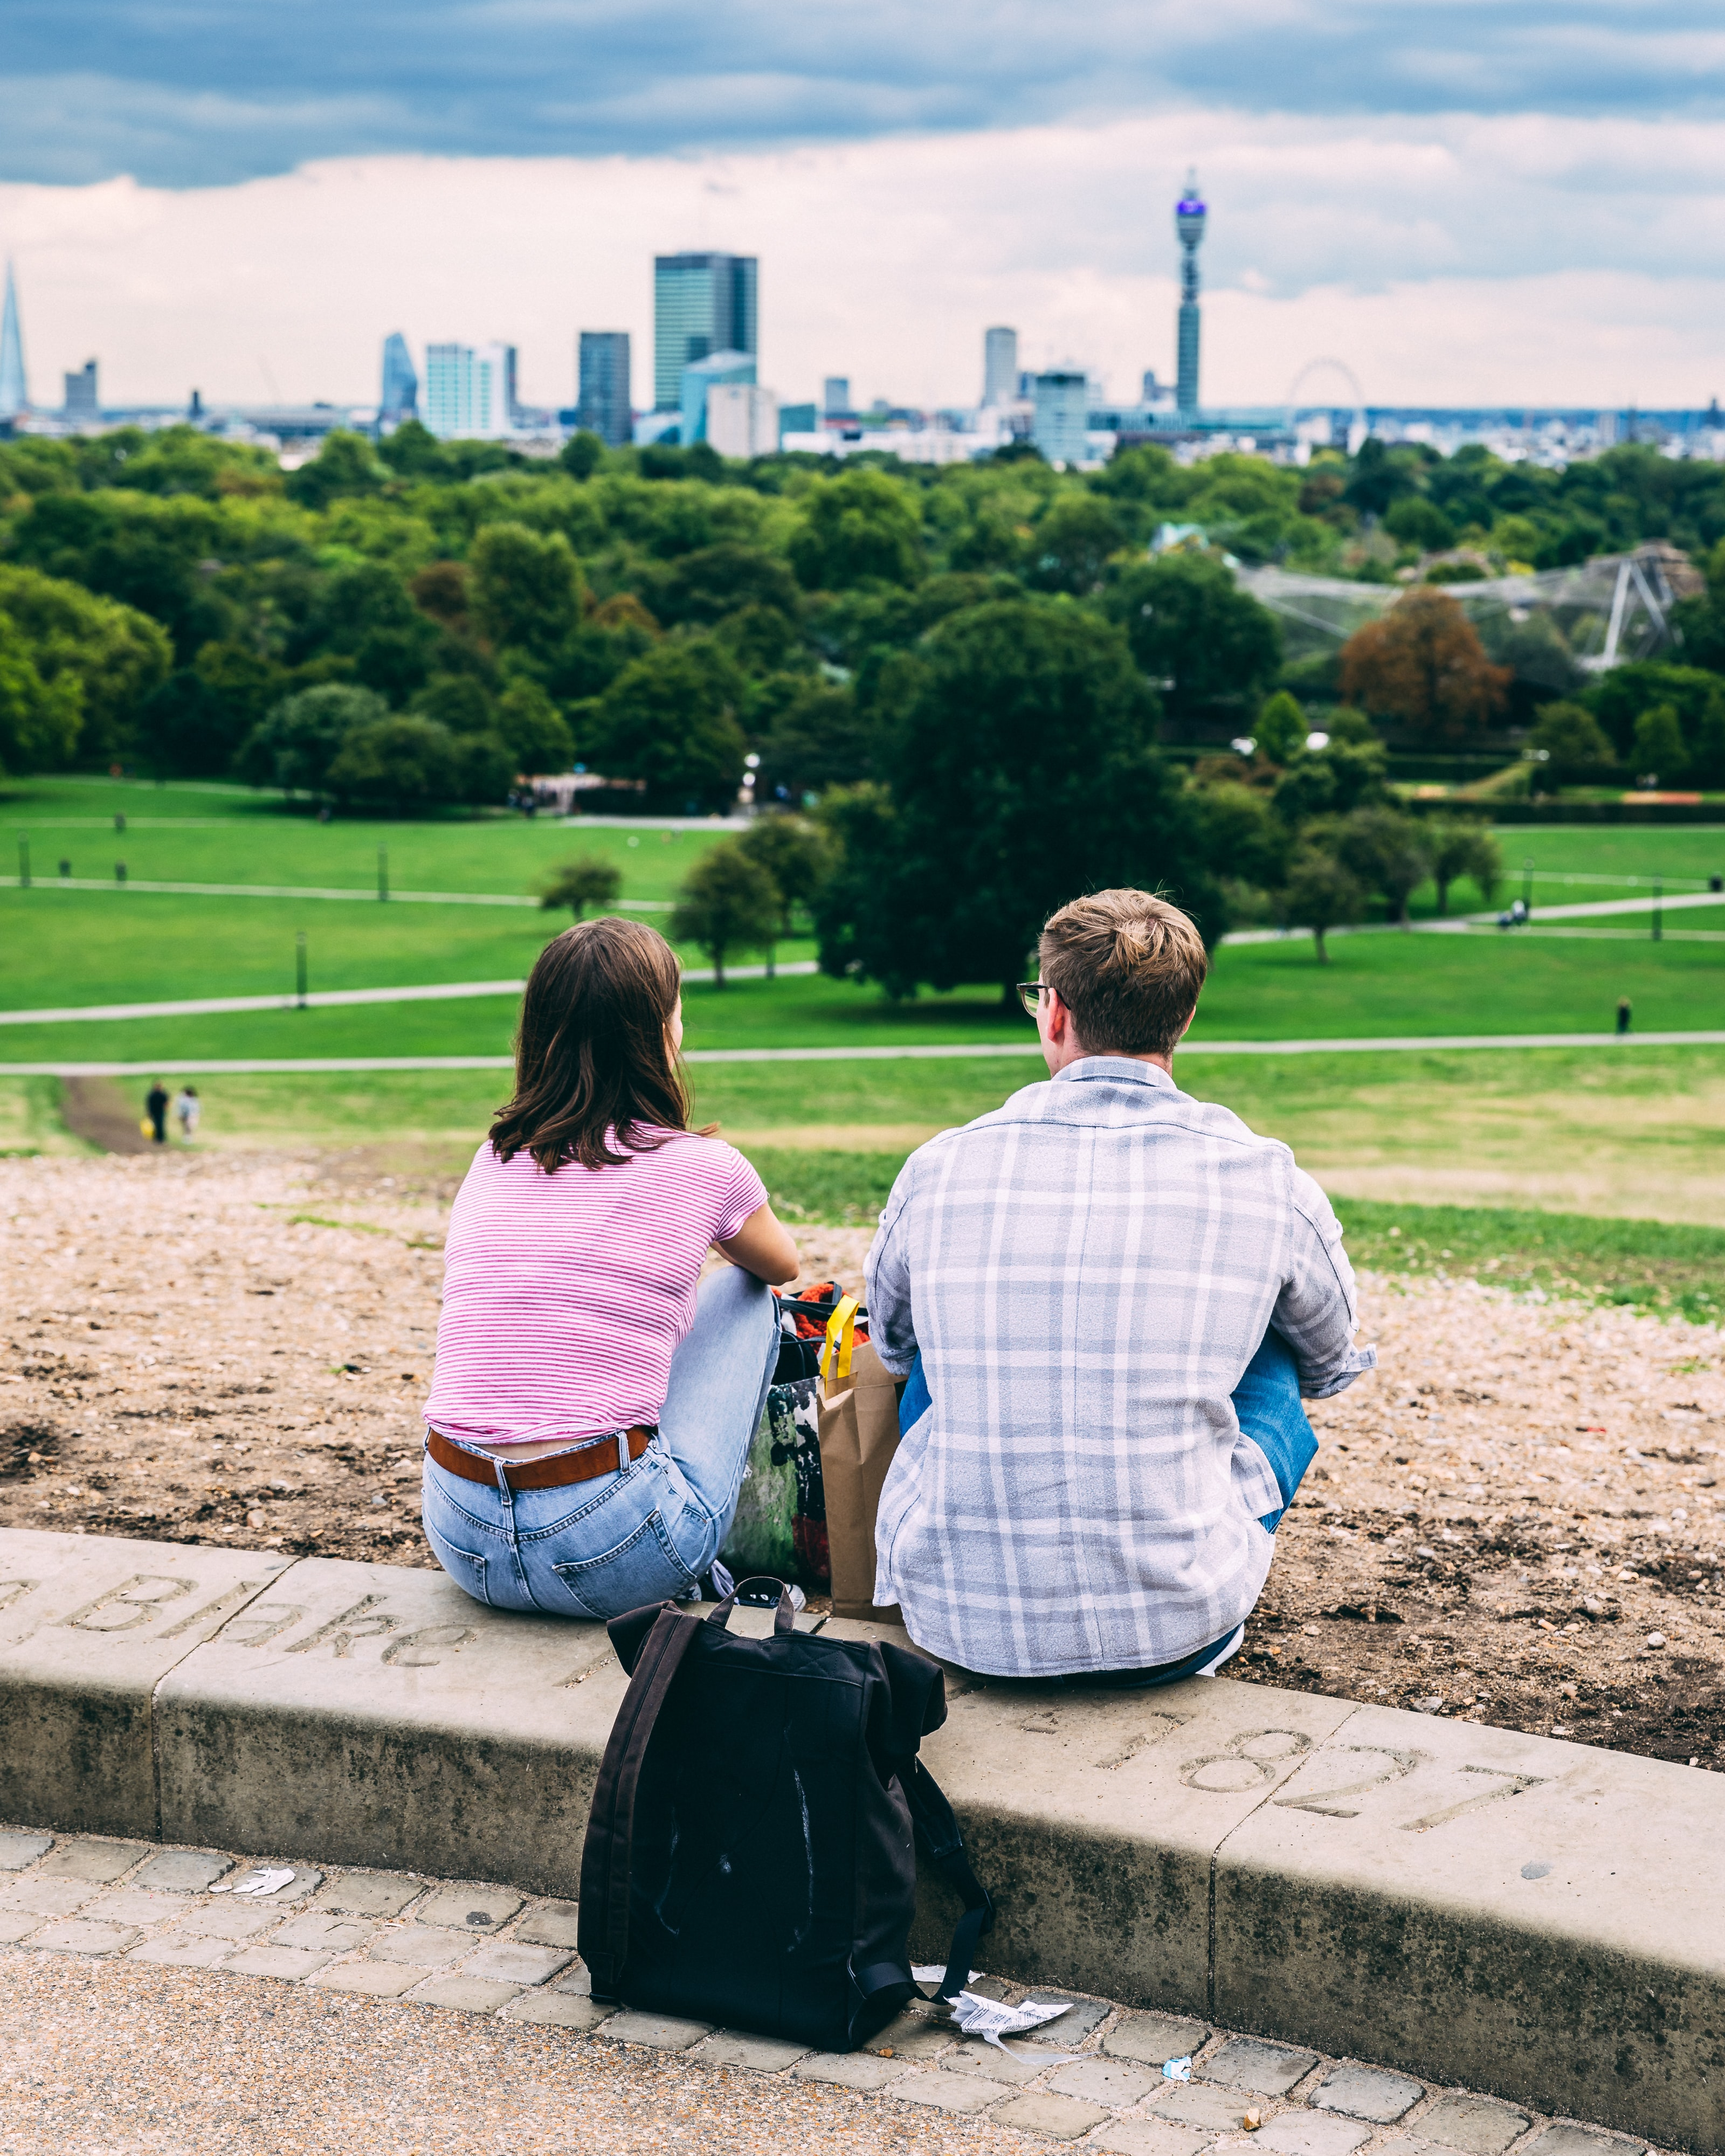 man and woman sitting under cloudy sky during daytime